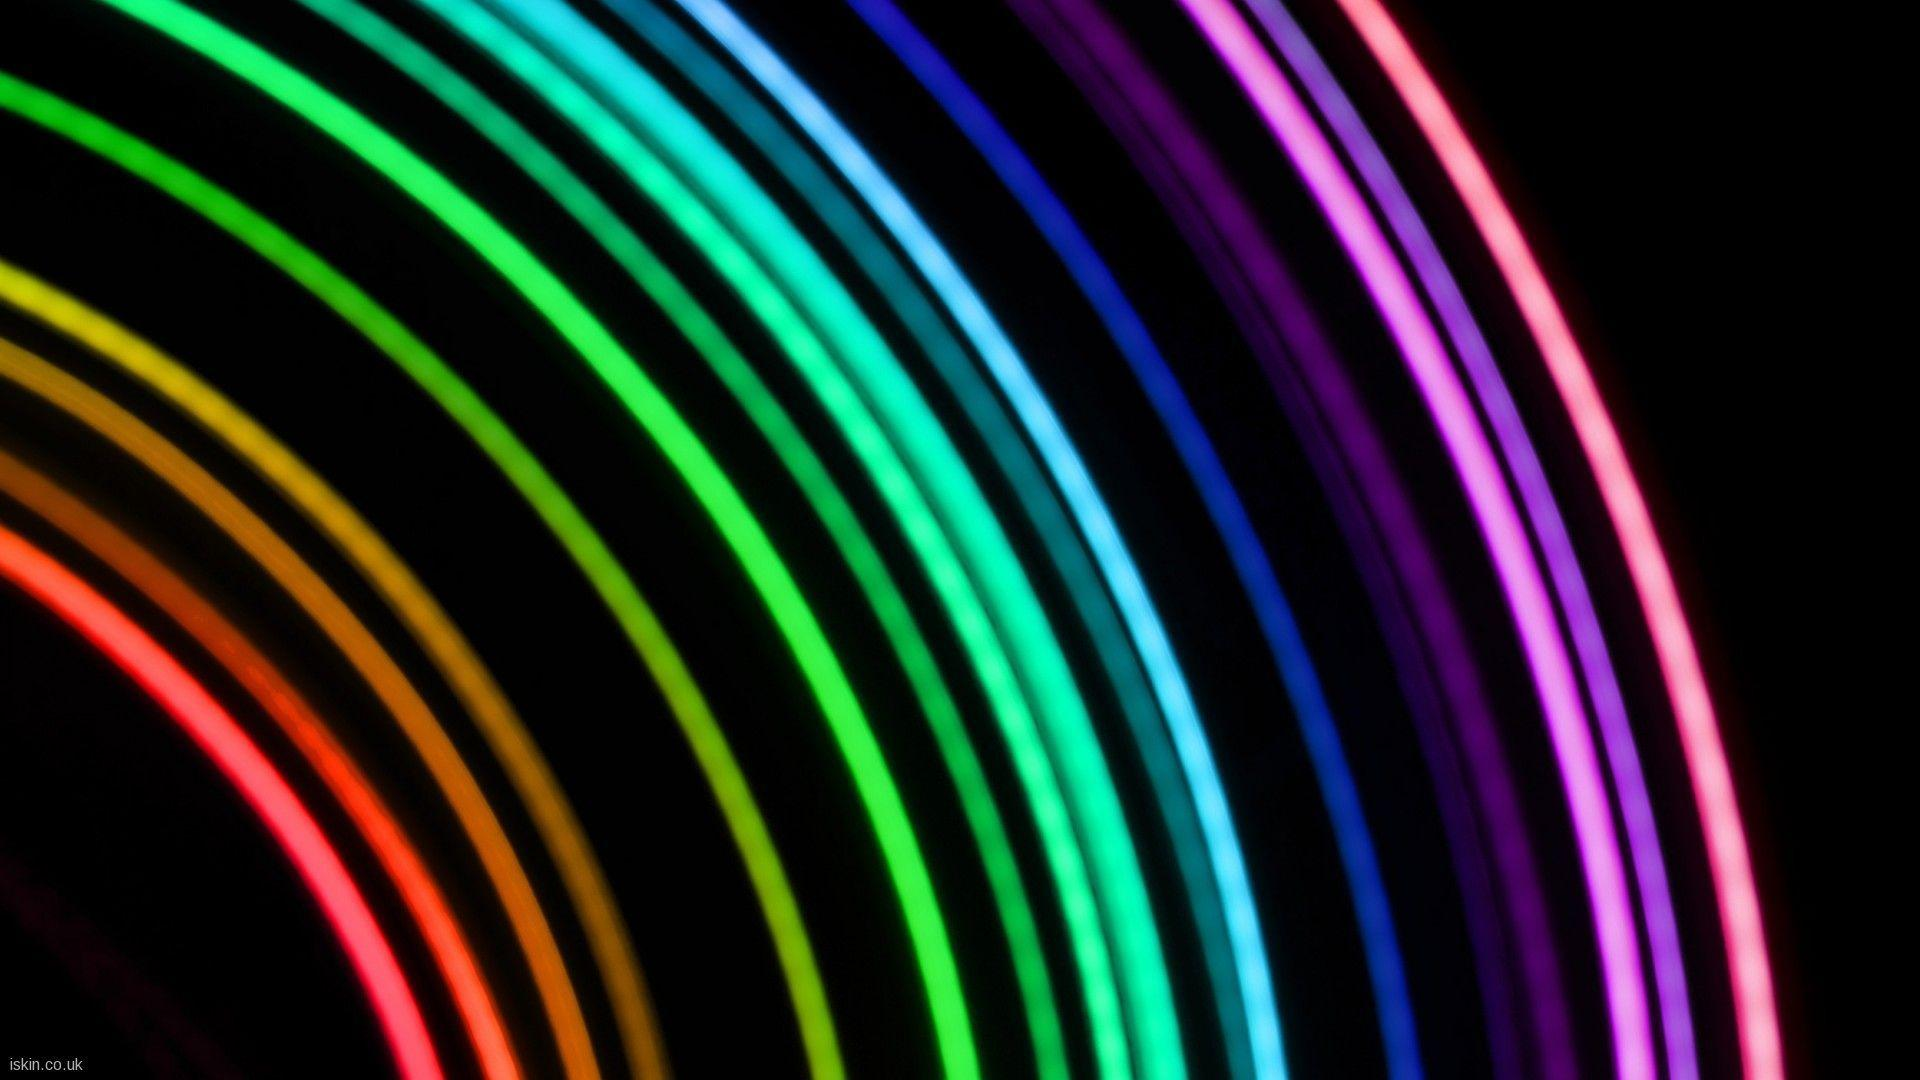 Bright Neon Backgrounds 1920x1080